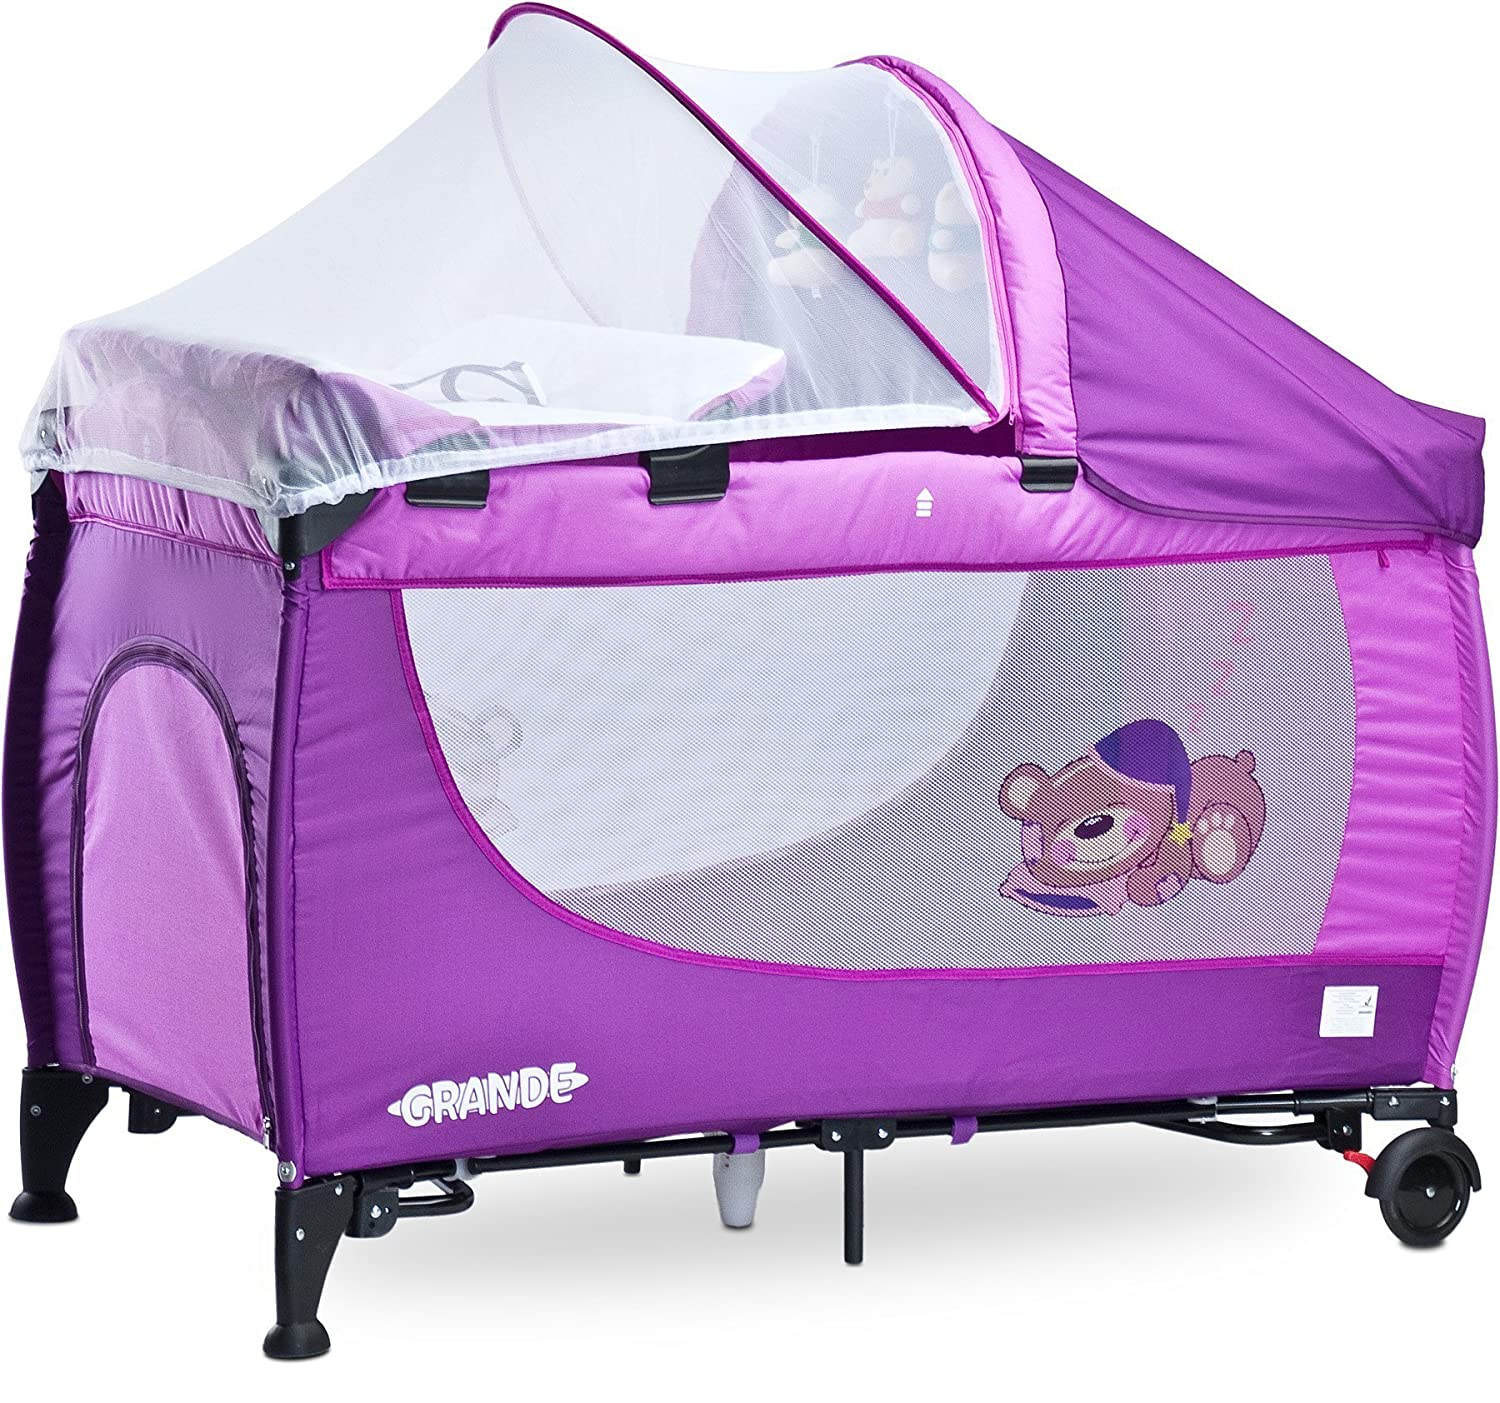 Caretero Grande Kinderbett-Reisebett - Purple